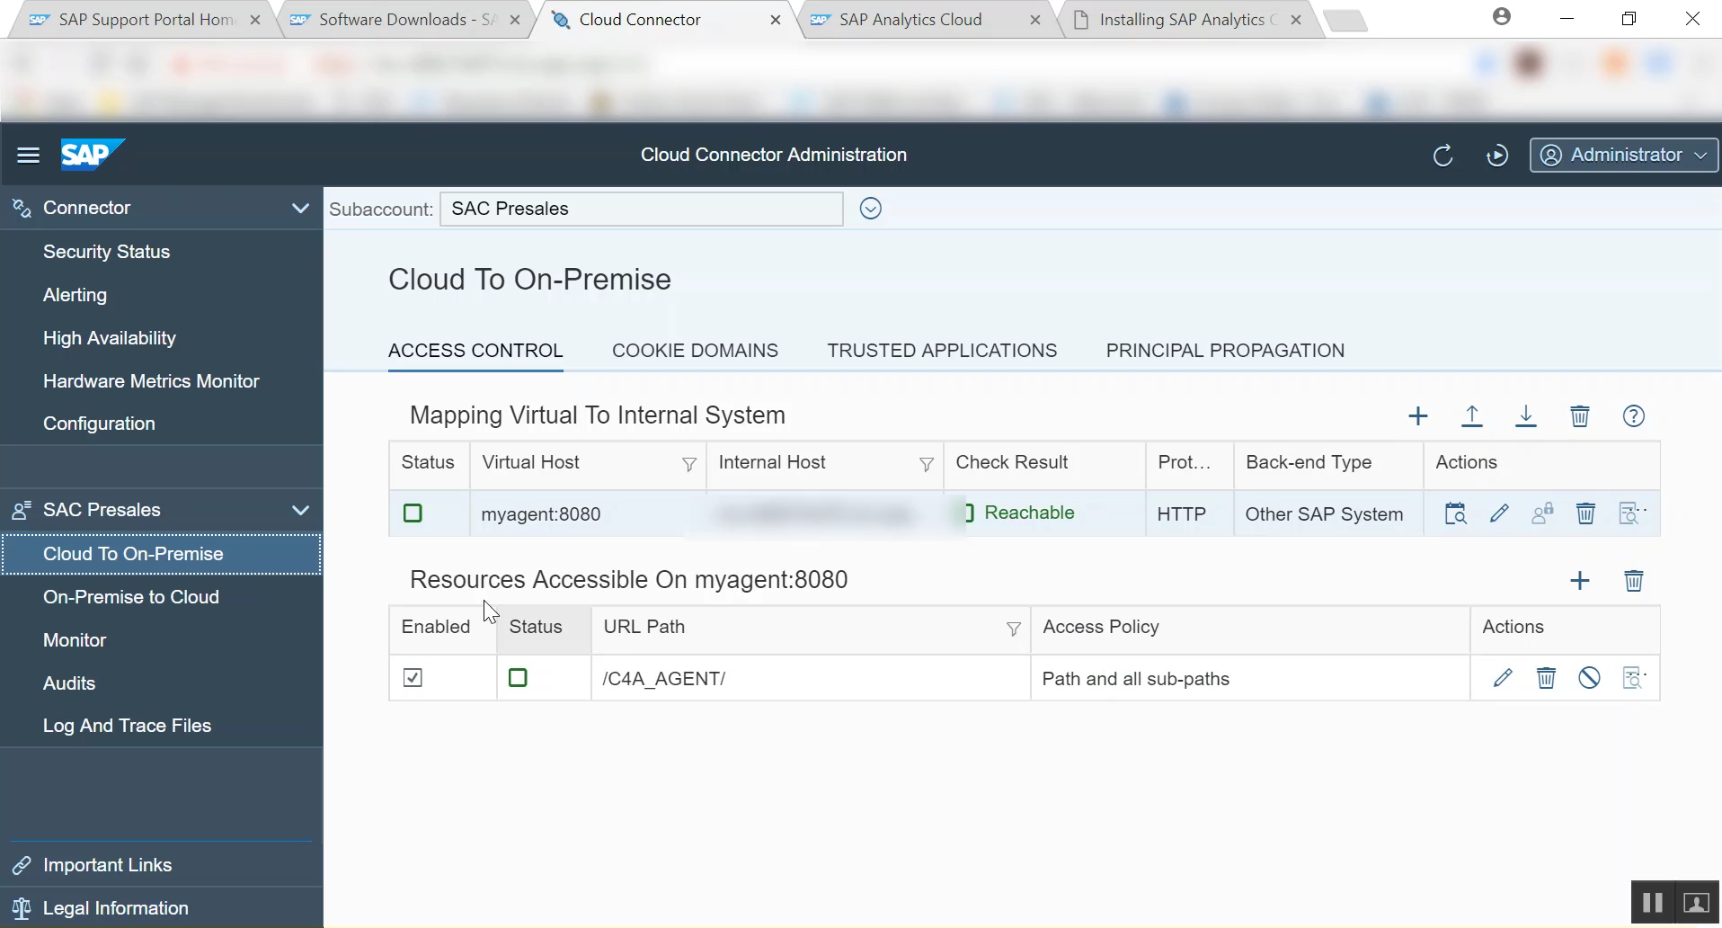 Connect your SAP Analytics Cloud to your existing SAP BI